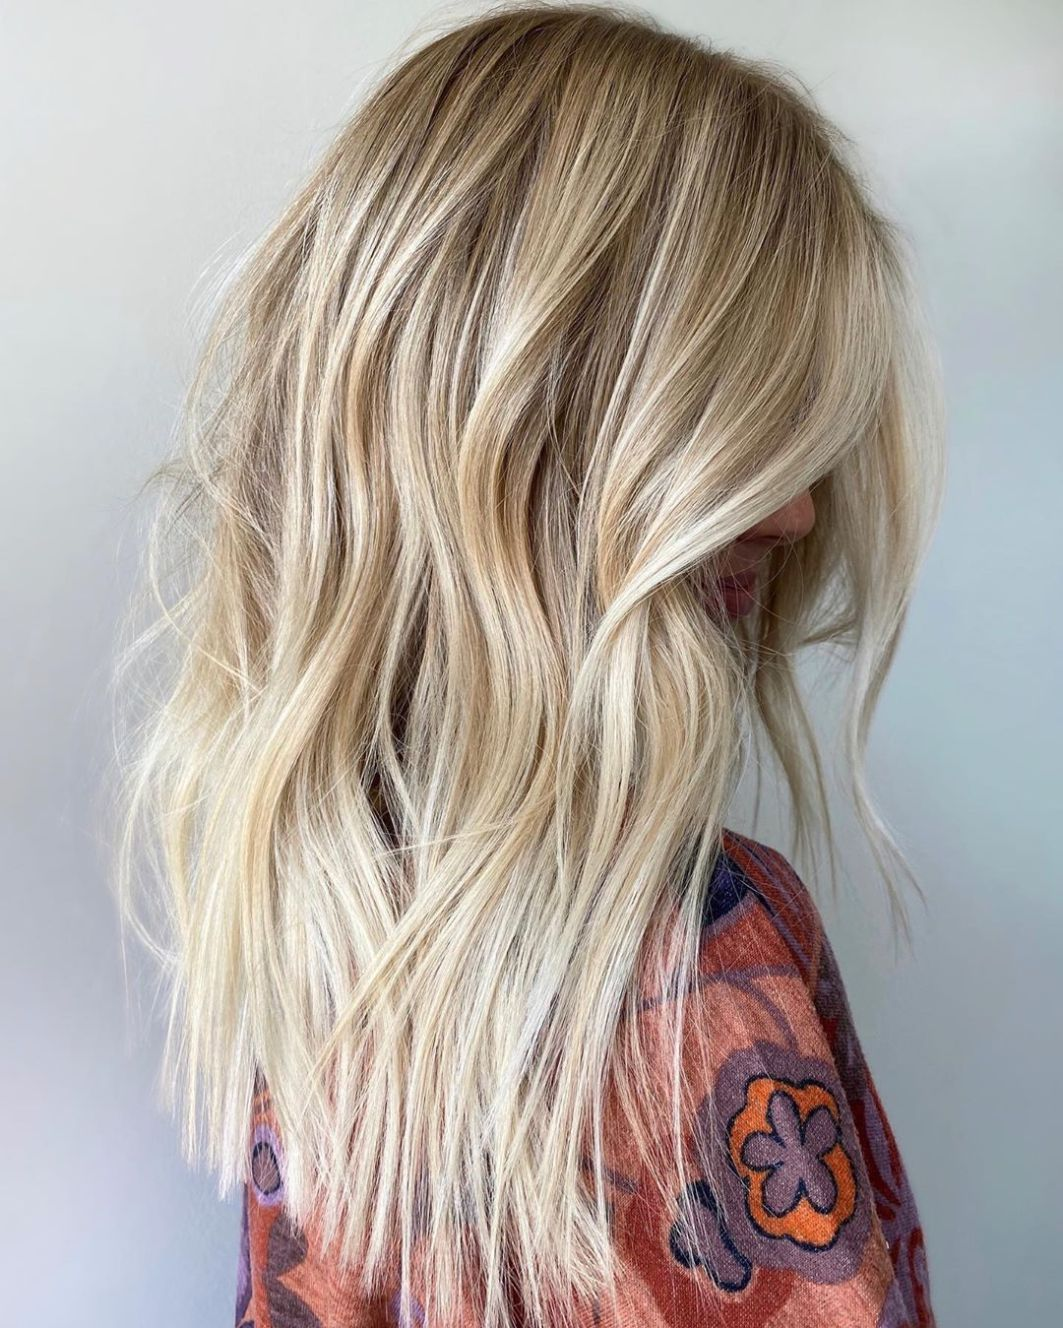 50 Best Blonde Highlights Ideas for a Chic Makeove